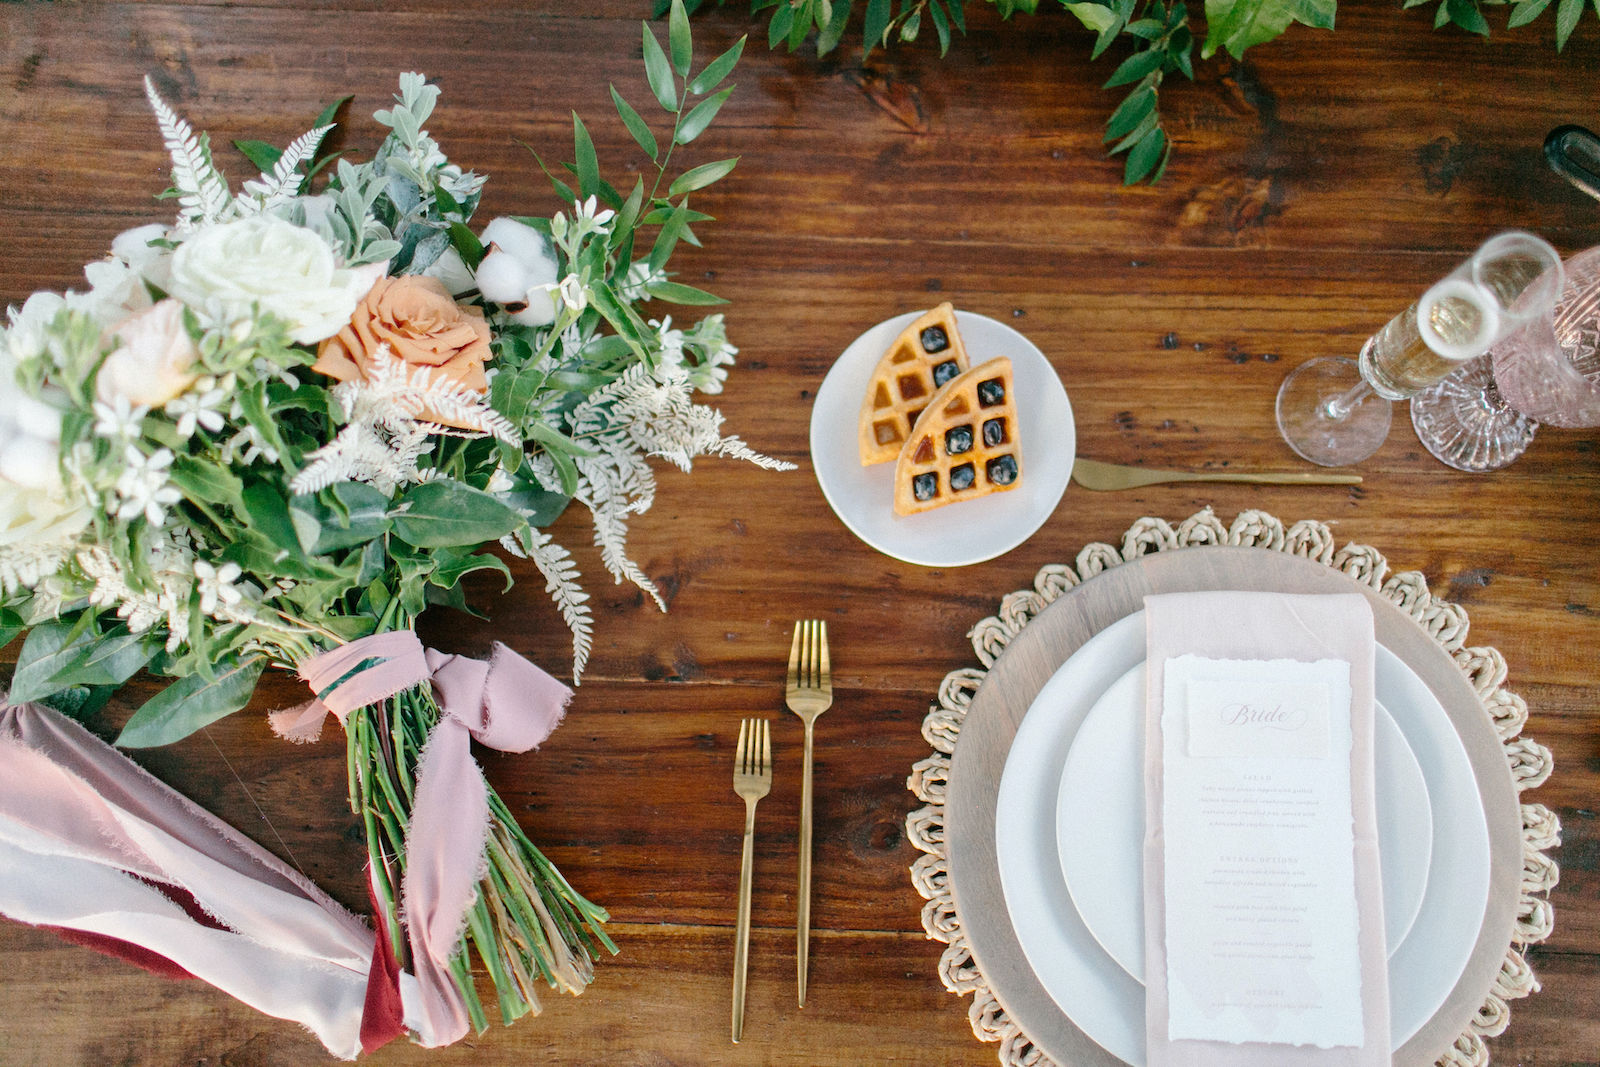 Styled Shoot Brunch Breakfast Wedding Place Setting with Gold Flatware, Menu Card on Blush Napkin, Whitewash Wood Charger Plate and Woven Rattan Rope Placemat | Natural White and Peach Bouquet with Roses Astilbe Cotton and Greenery tied with Blush Pink Ribbon